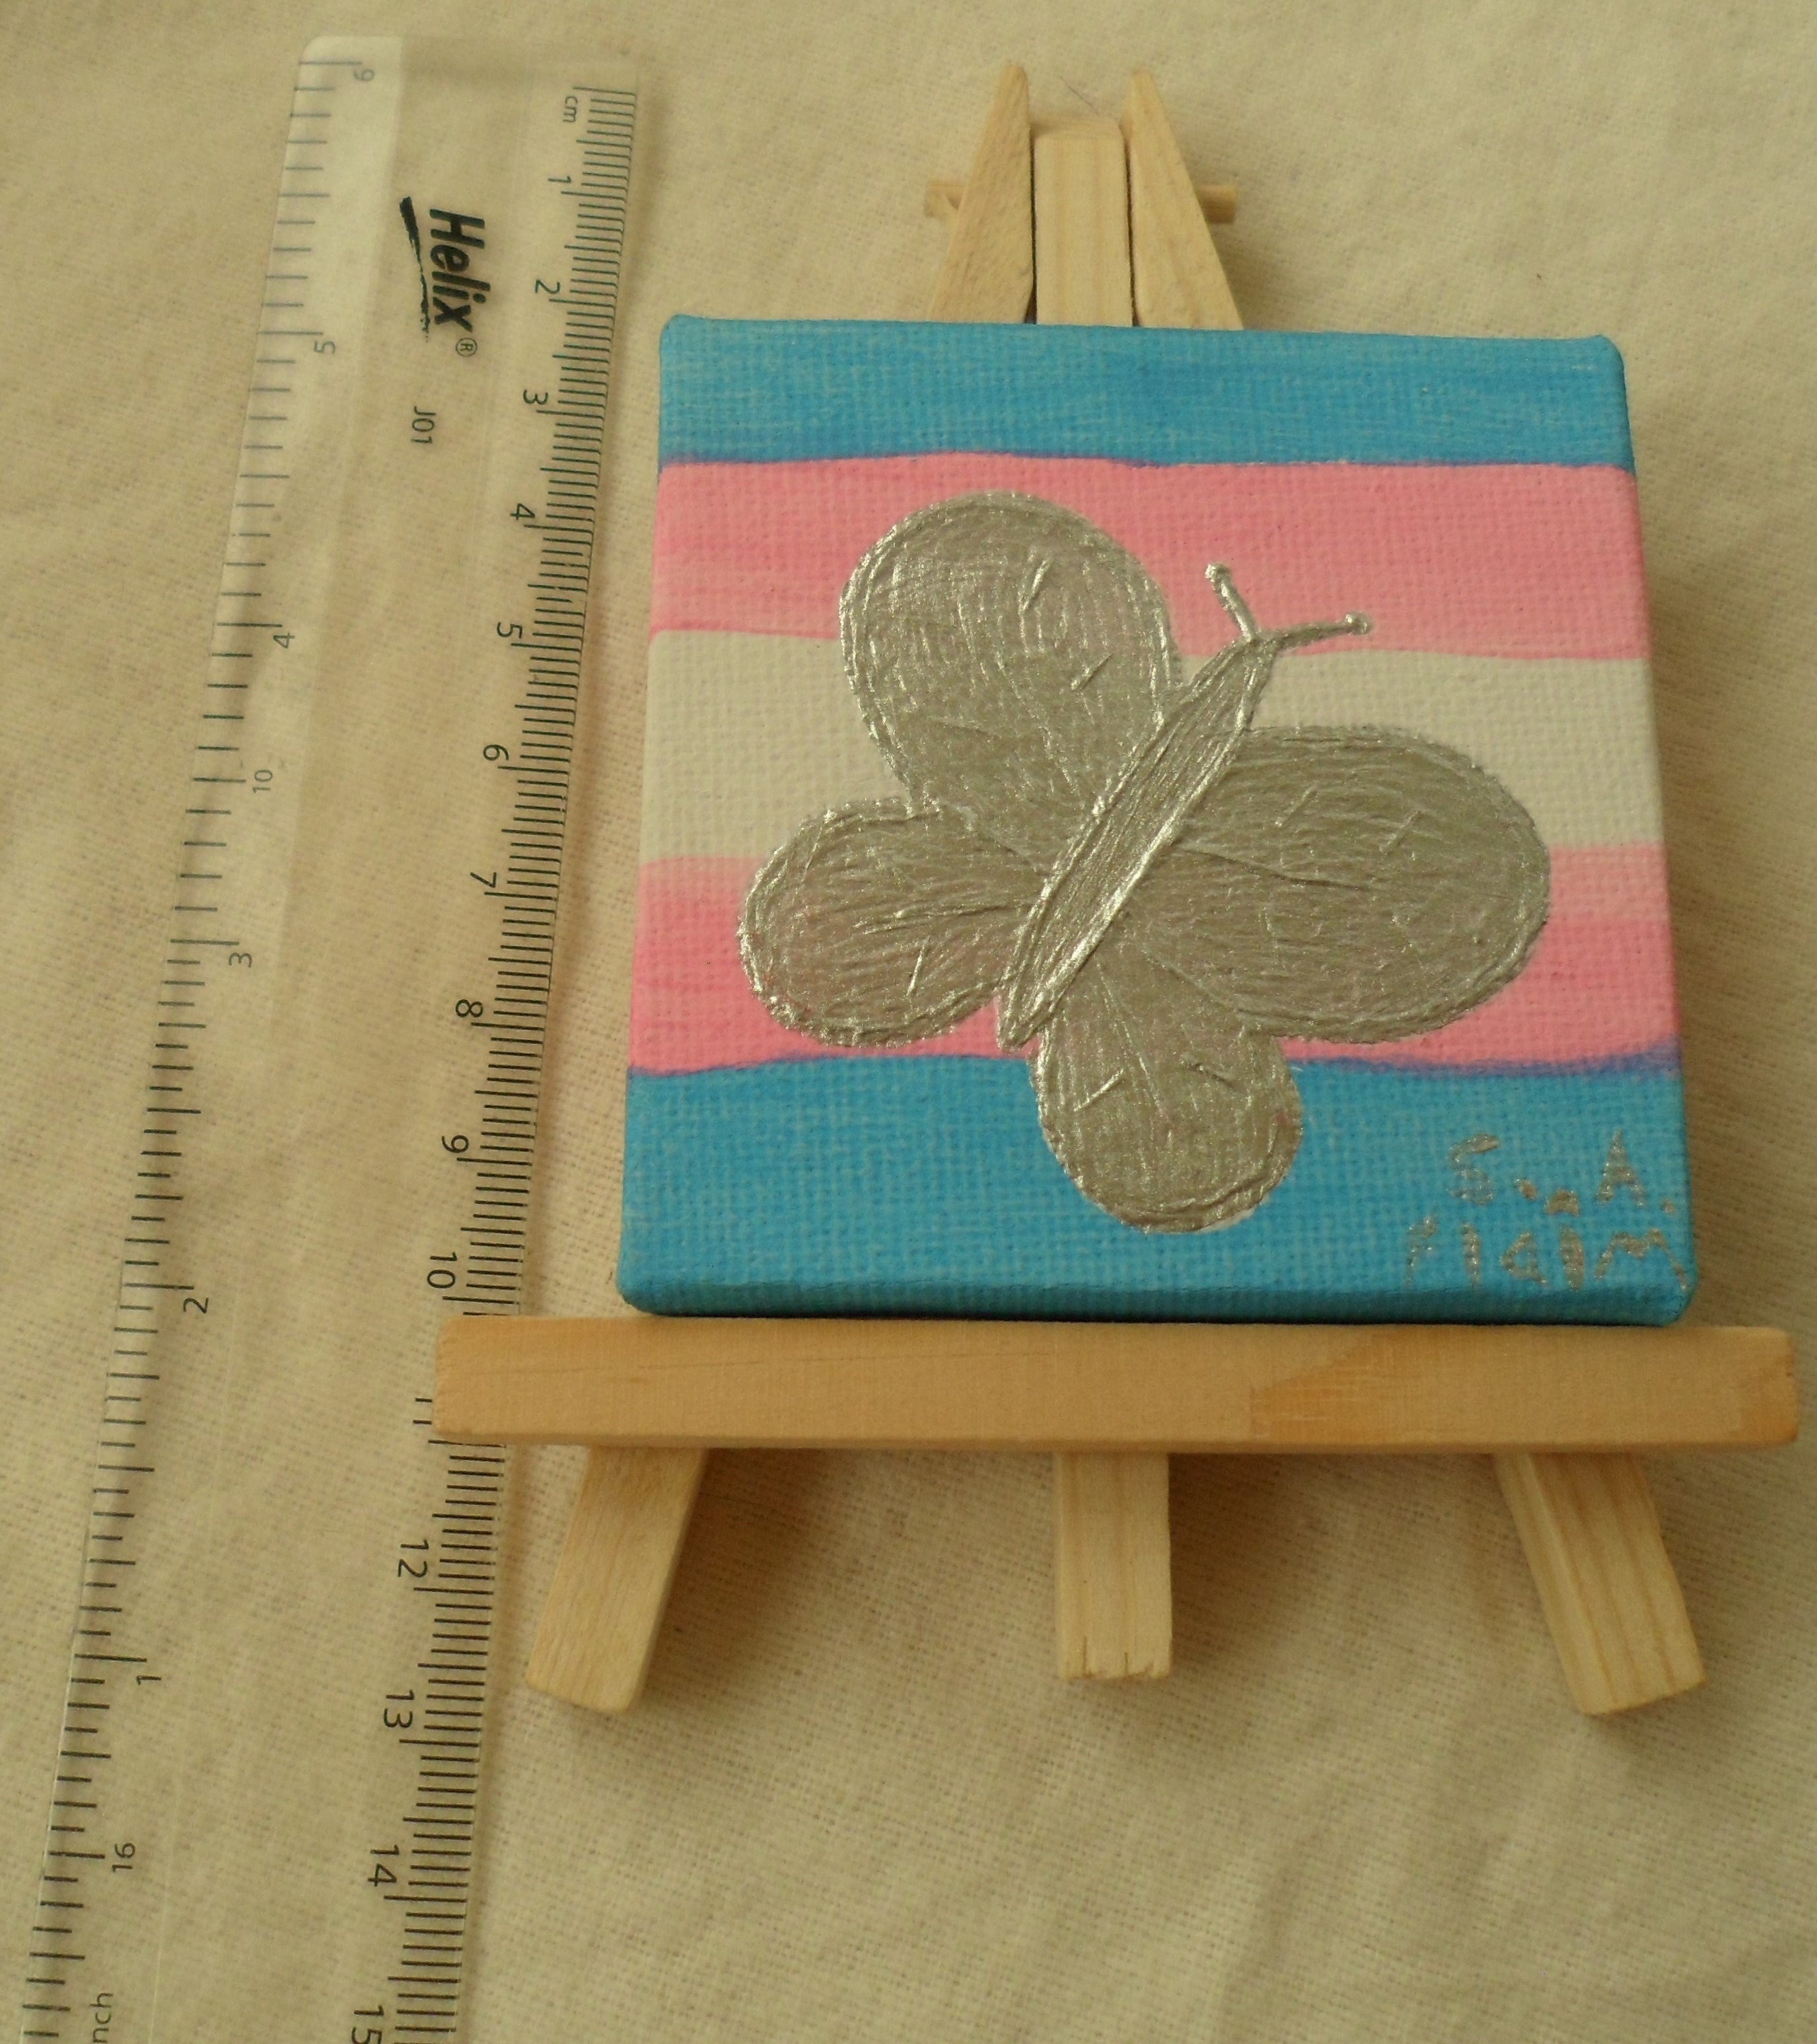 Trans Butterfly Mini Easel Art by S.A.Flaim - Tully Crafts